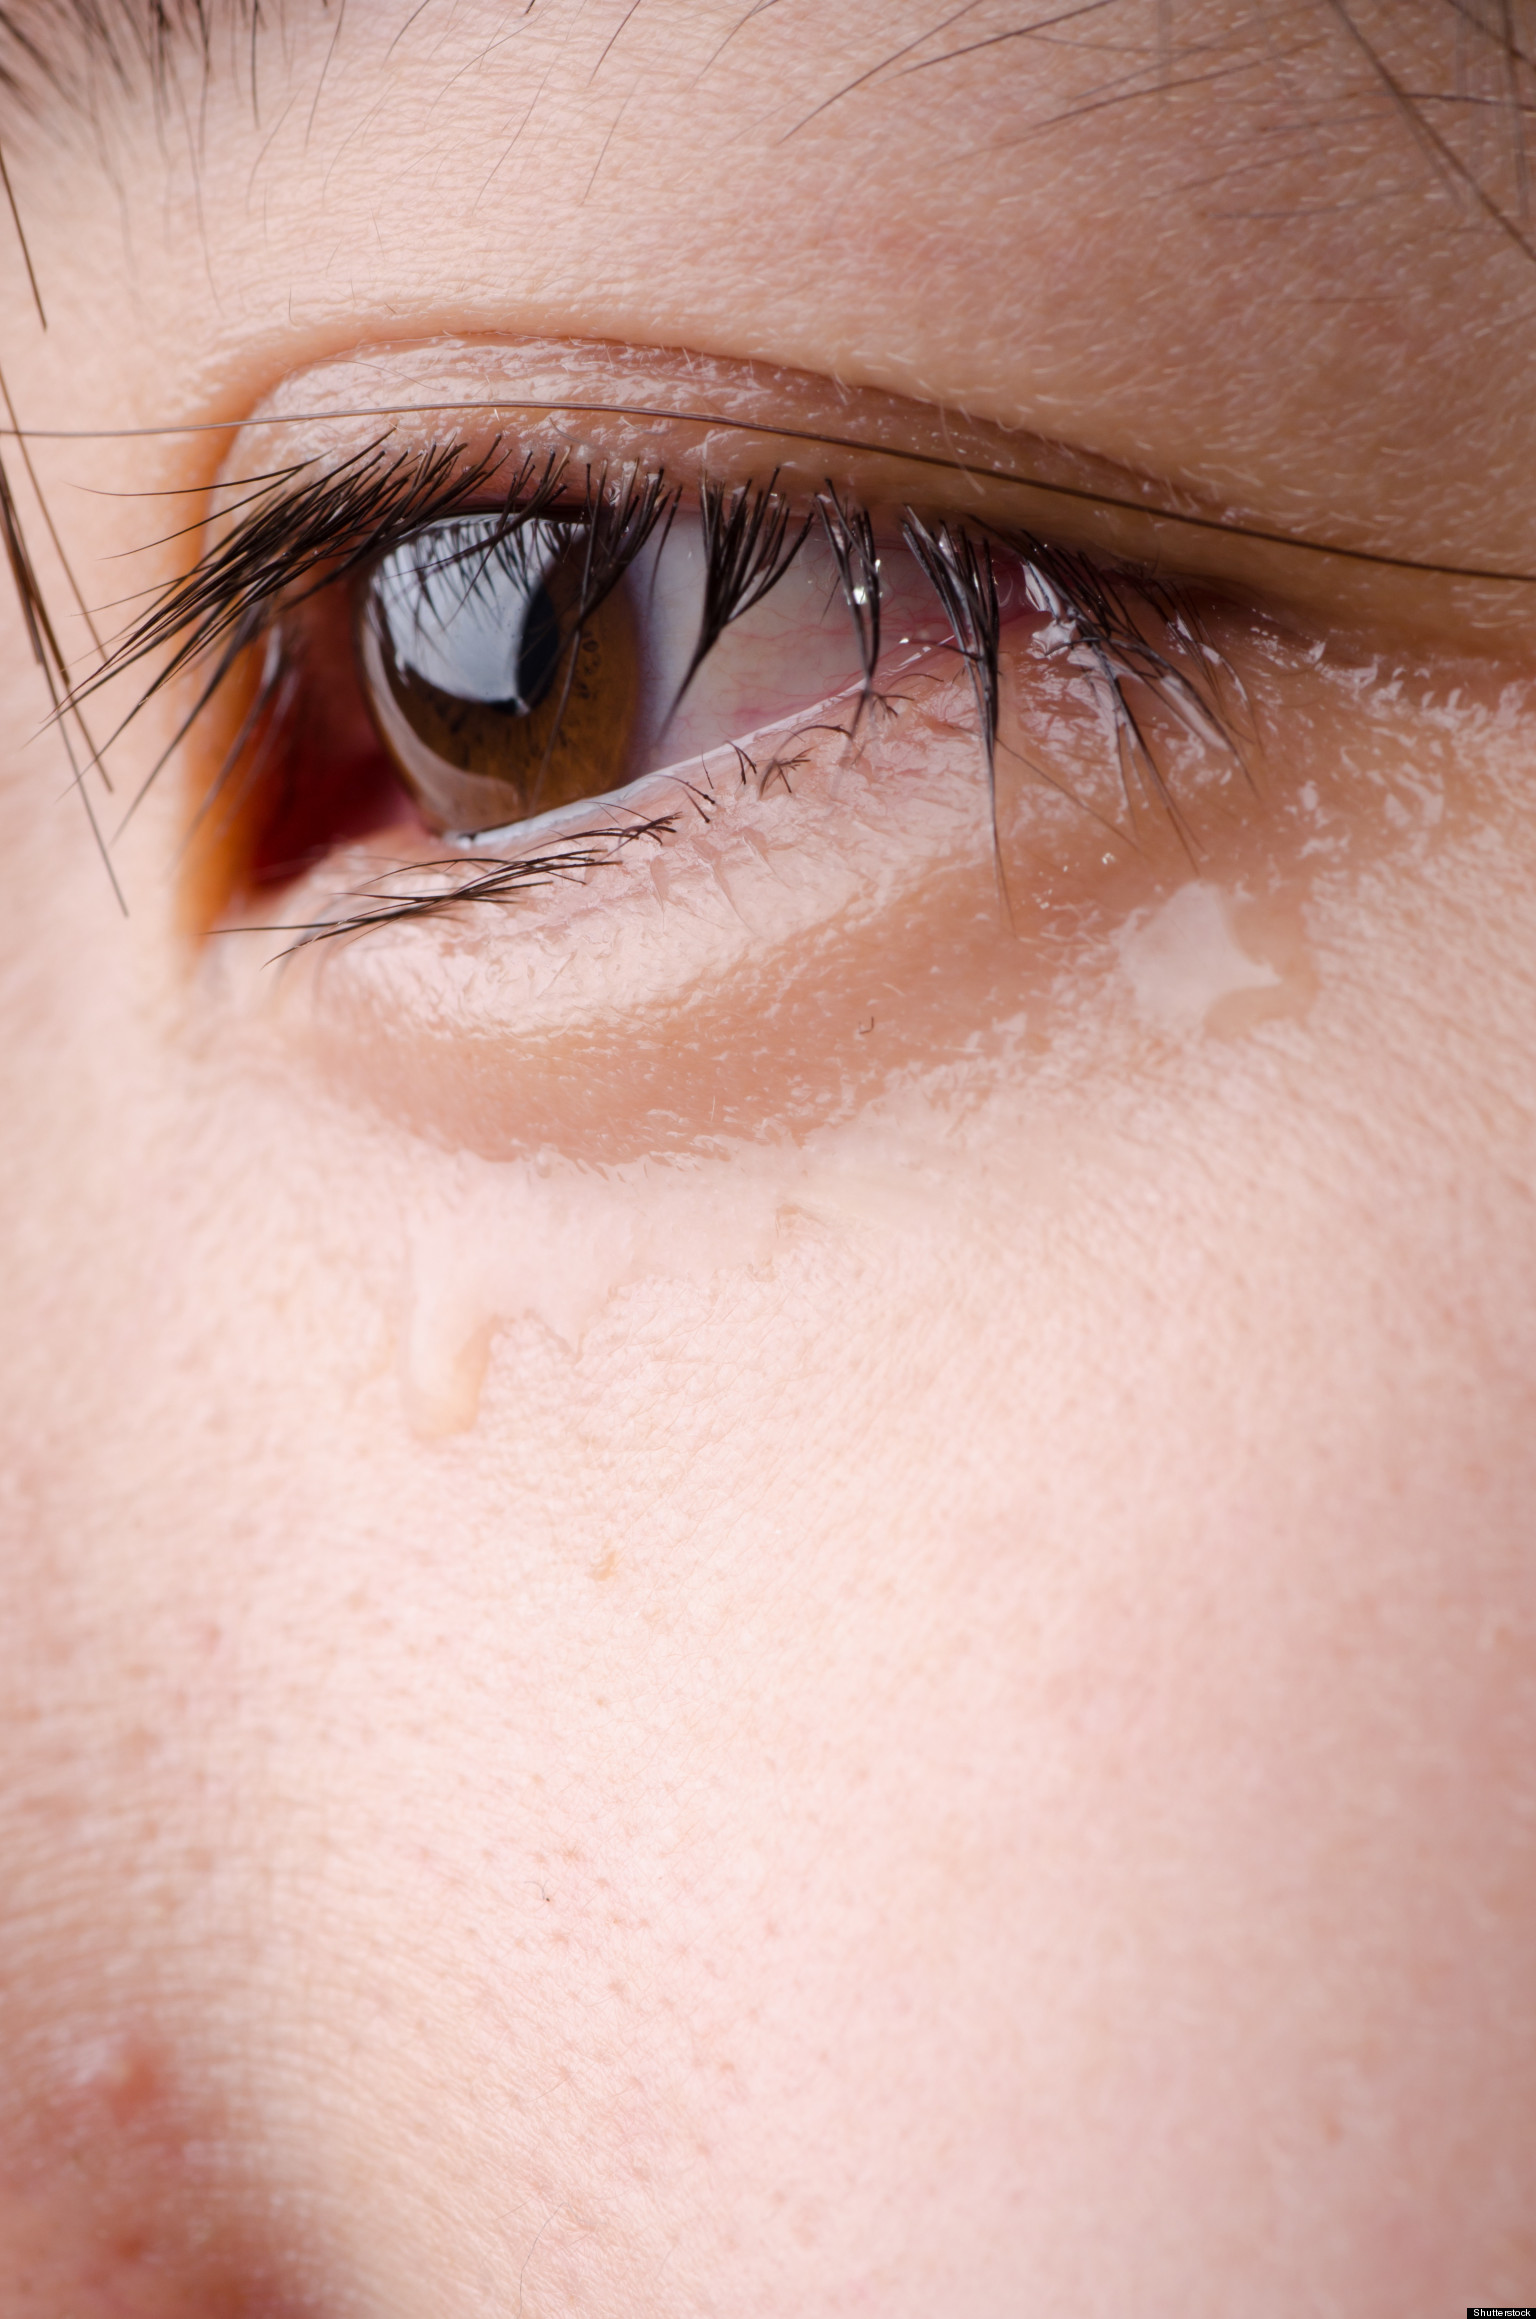 Crying Science: Why Do We Shed Tears When We're Sad